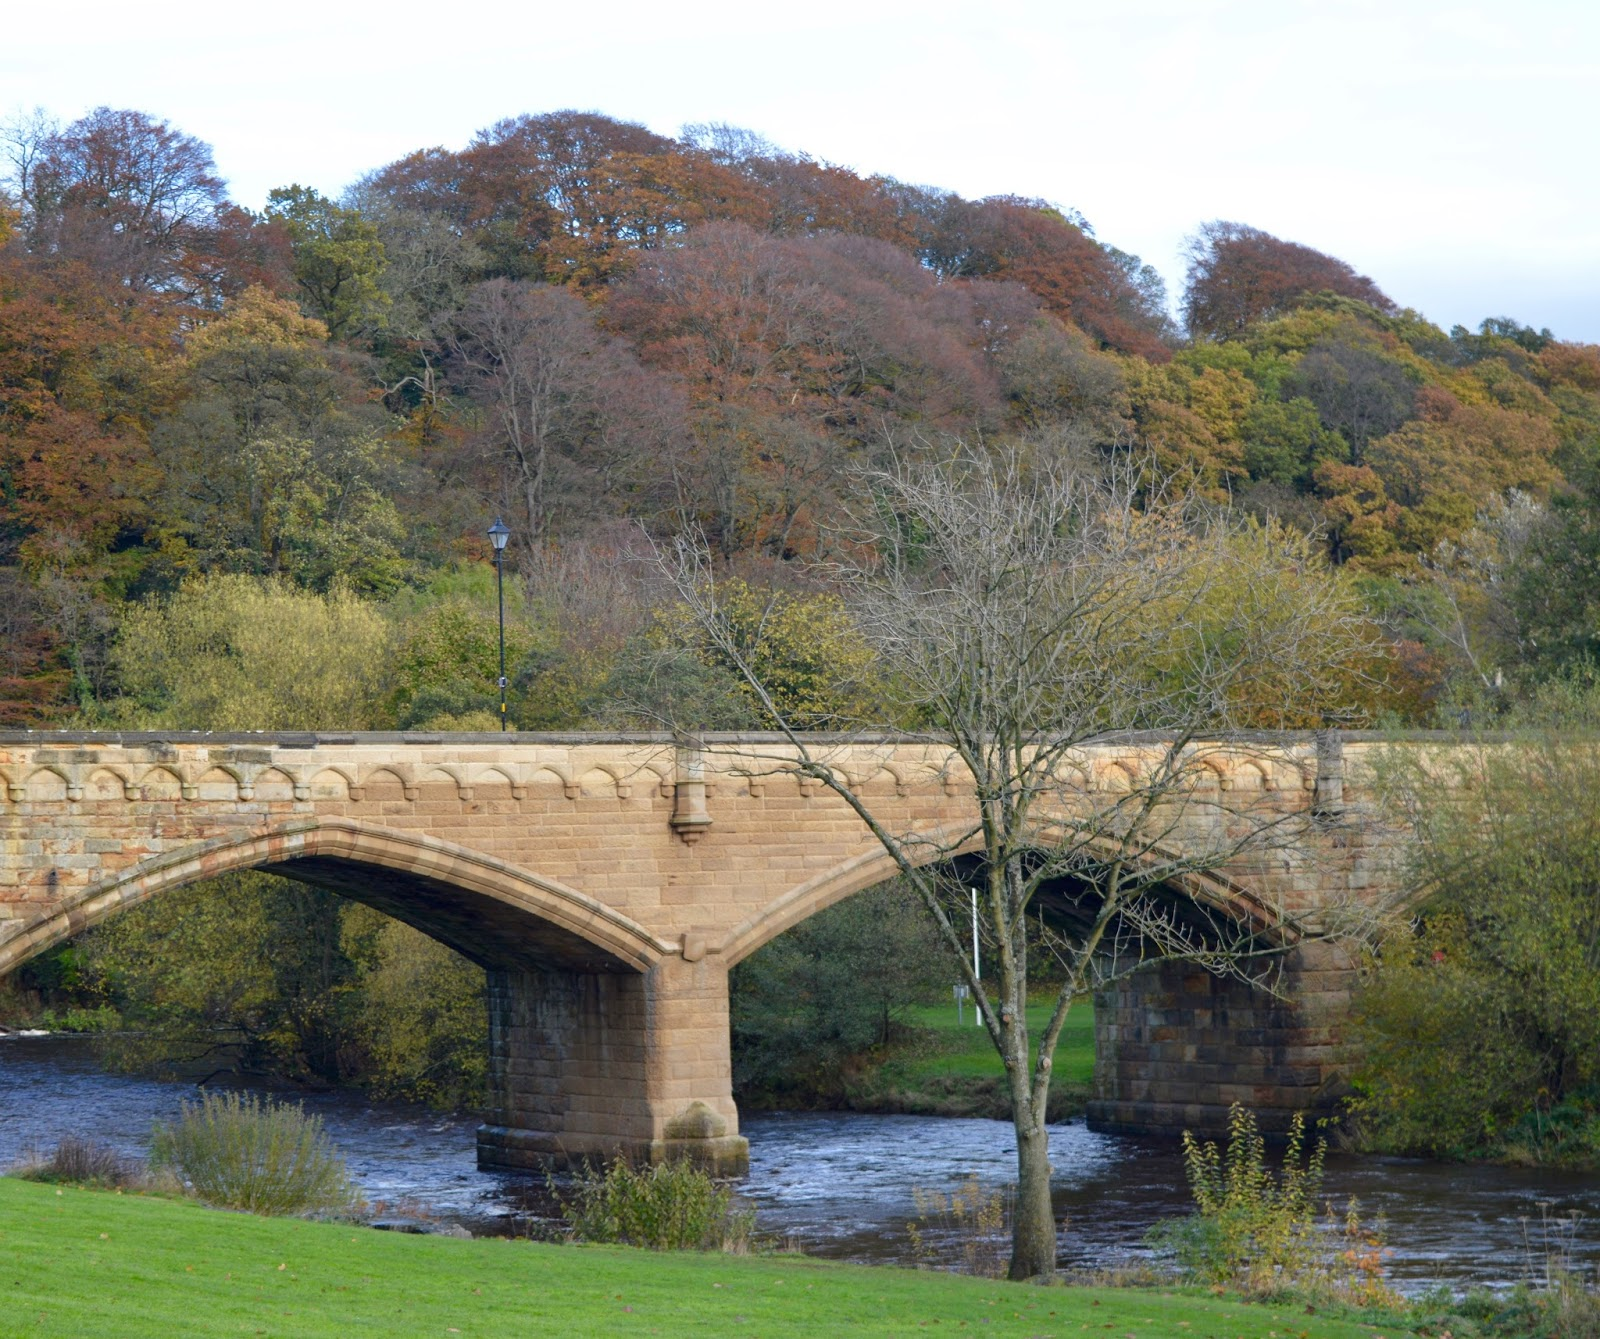 A weekend break in Richmond, North Yorkshire | What to do with the kids - A walk along the River Swale